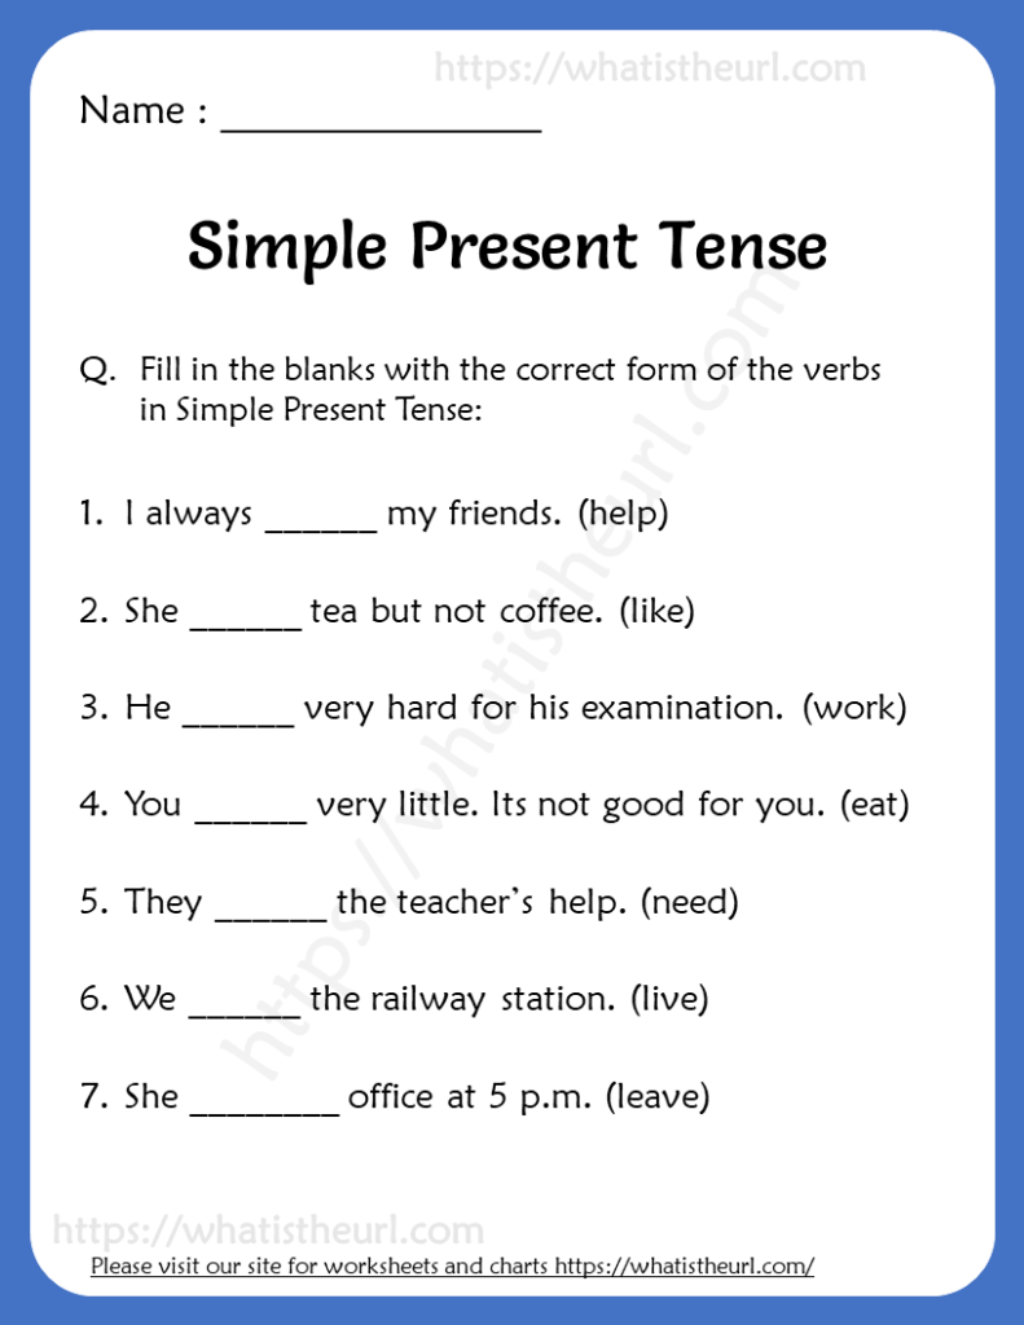 Simple Present Tense Worksheets For Grade 3